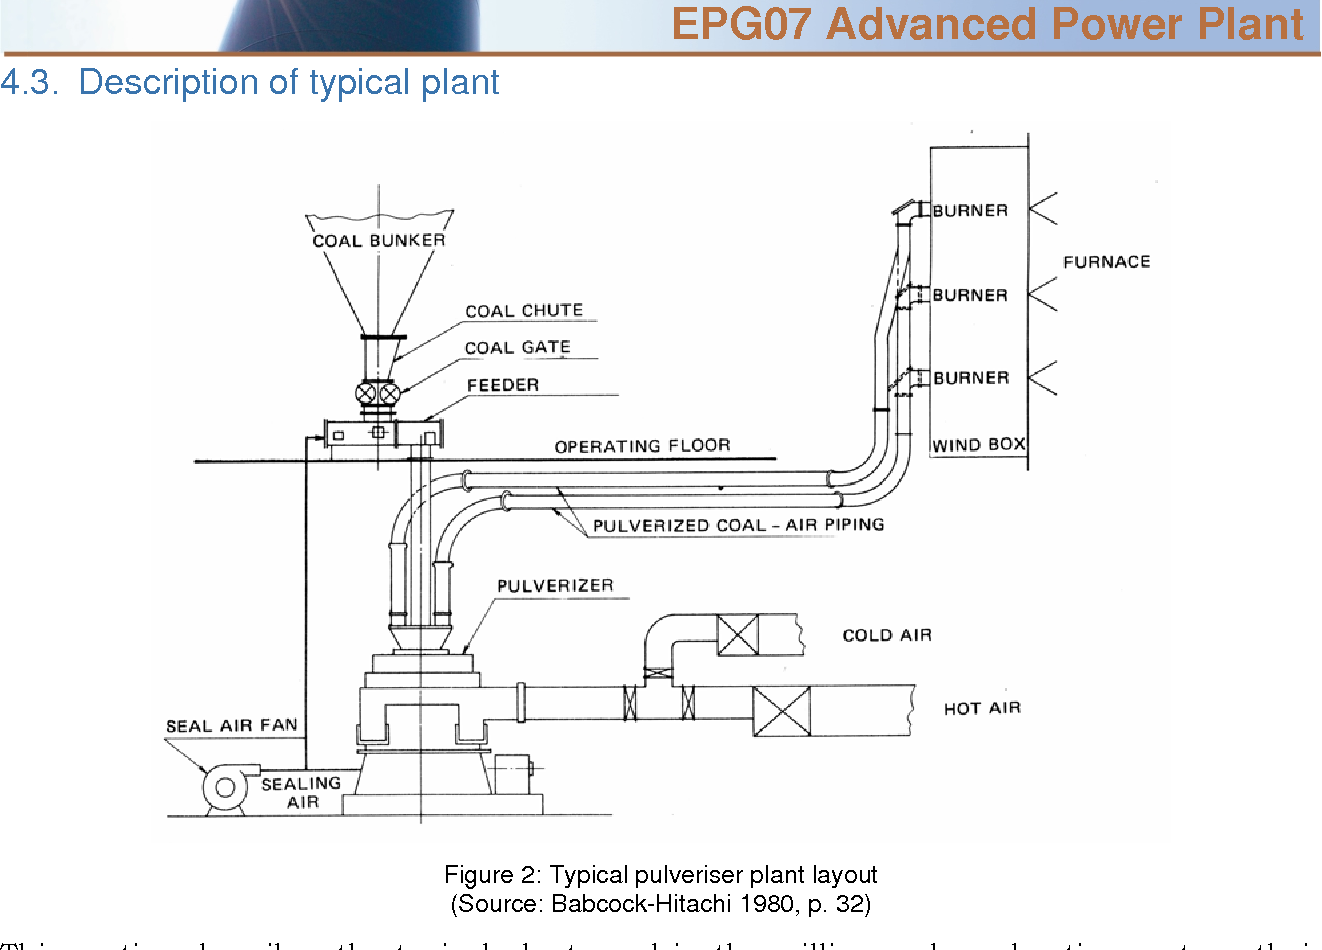 Power Generation Skills Development Module 4 Thermal Plant Layout Images Figure 2 Typical Pulveriser Source Babcock Hitachi 1980 P